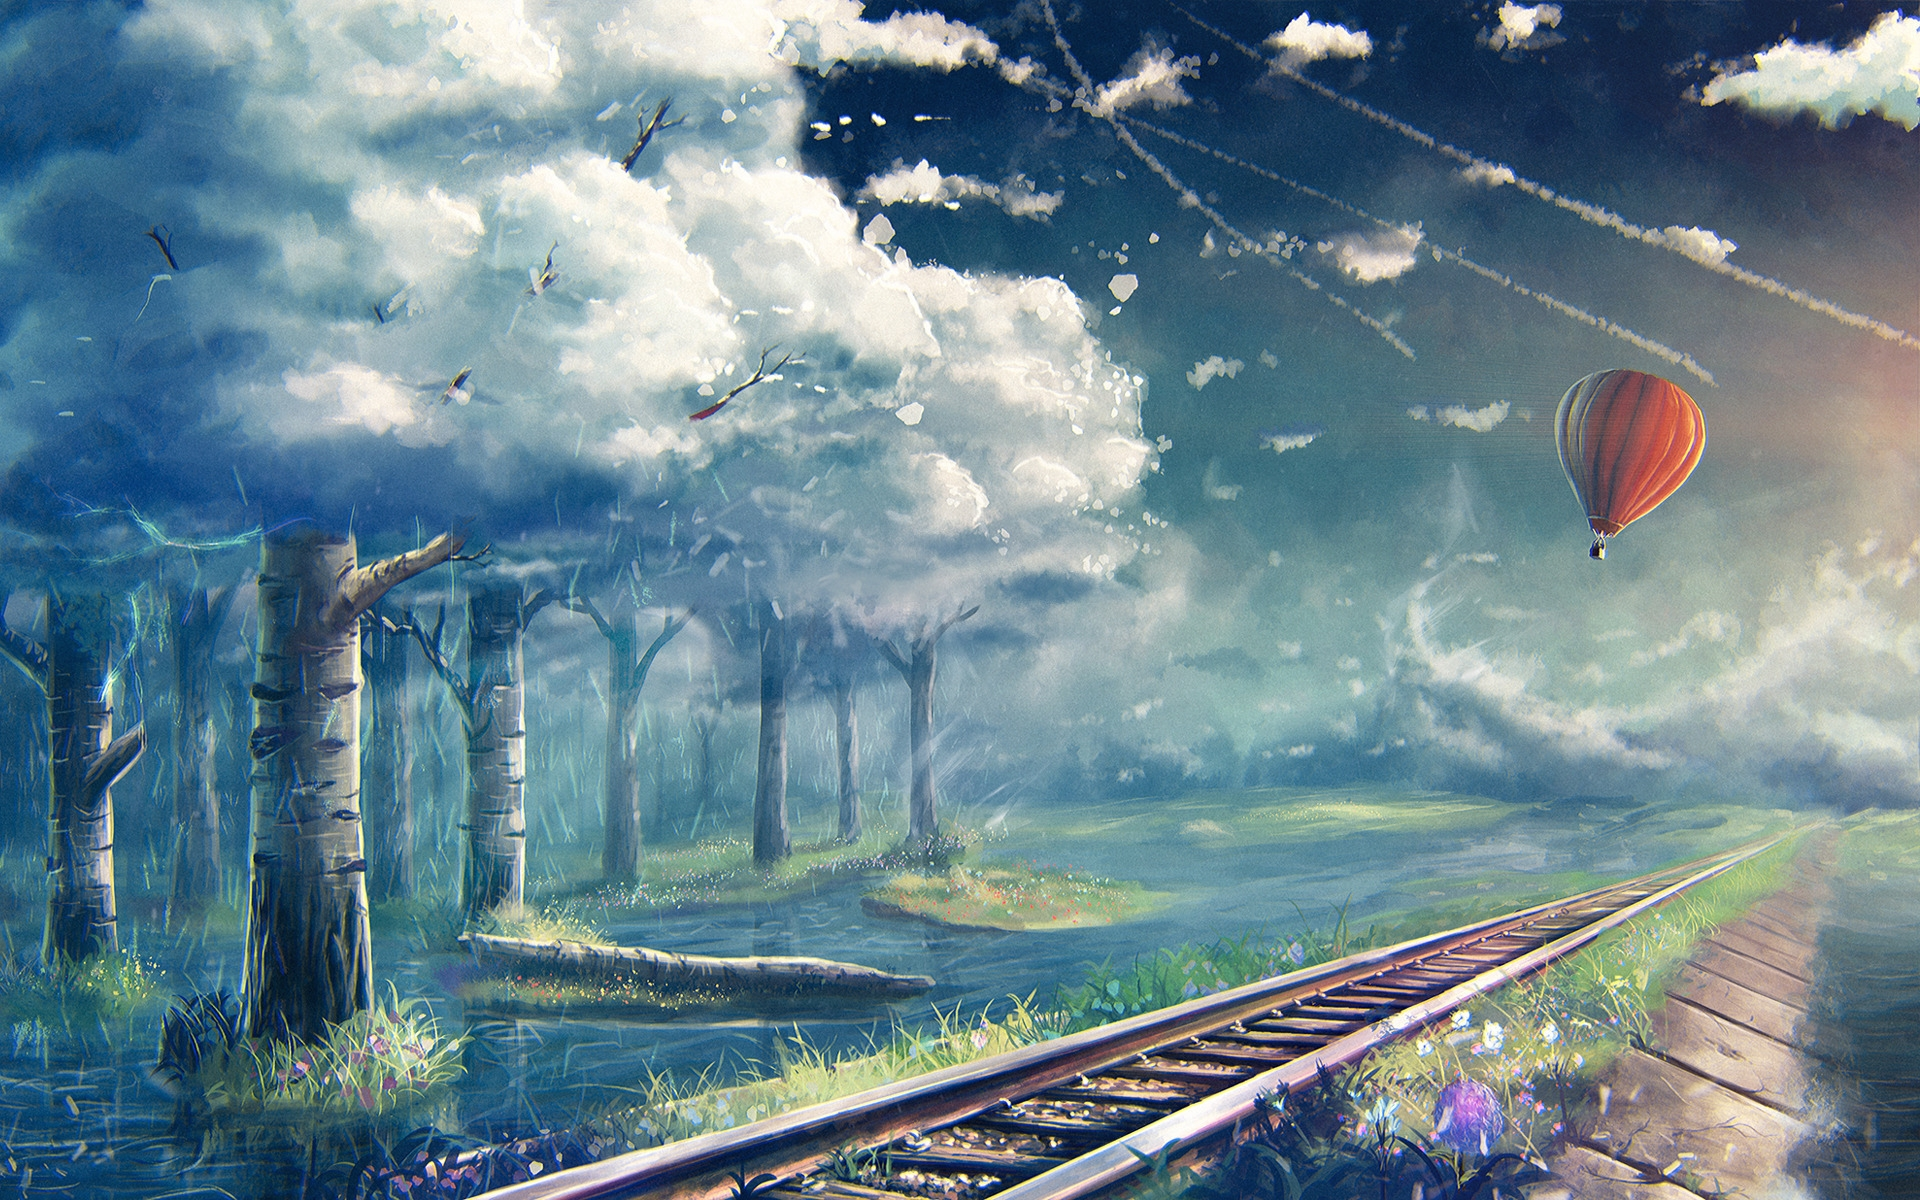 Traveling into Dreams for 1920 x 1200 widescreen resolution